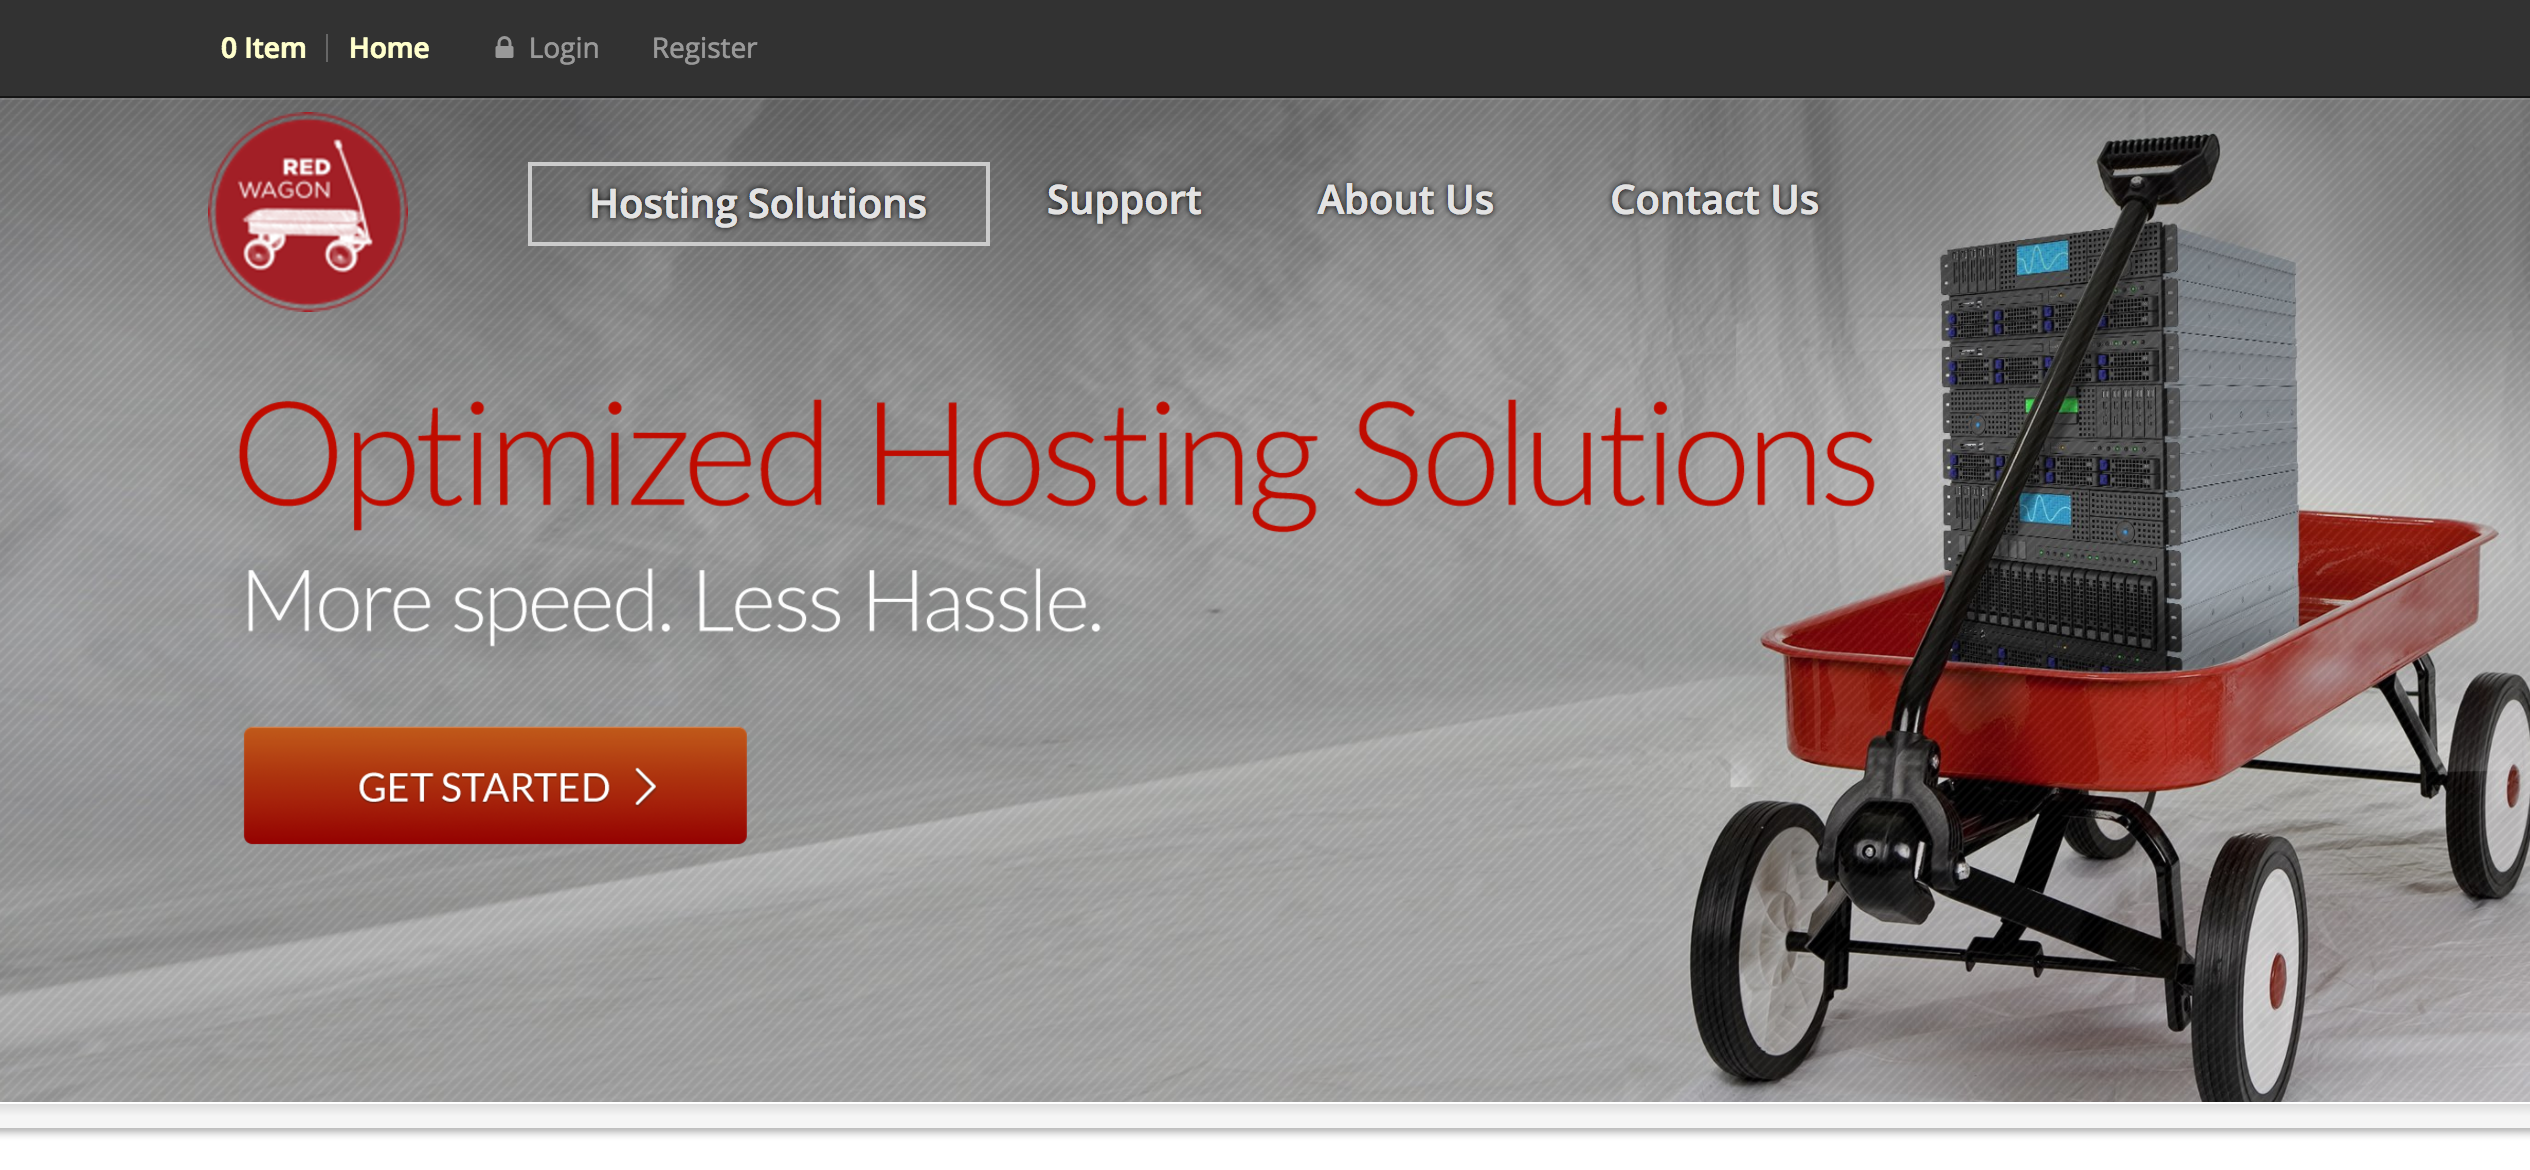 red wagon hosting website